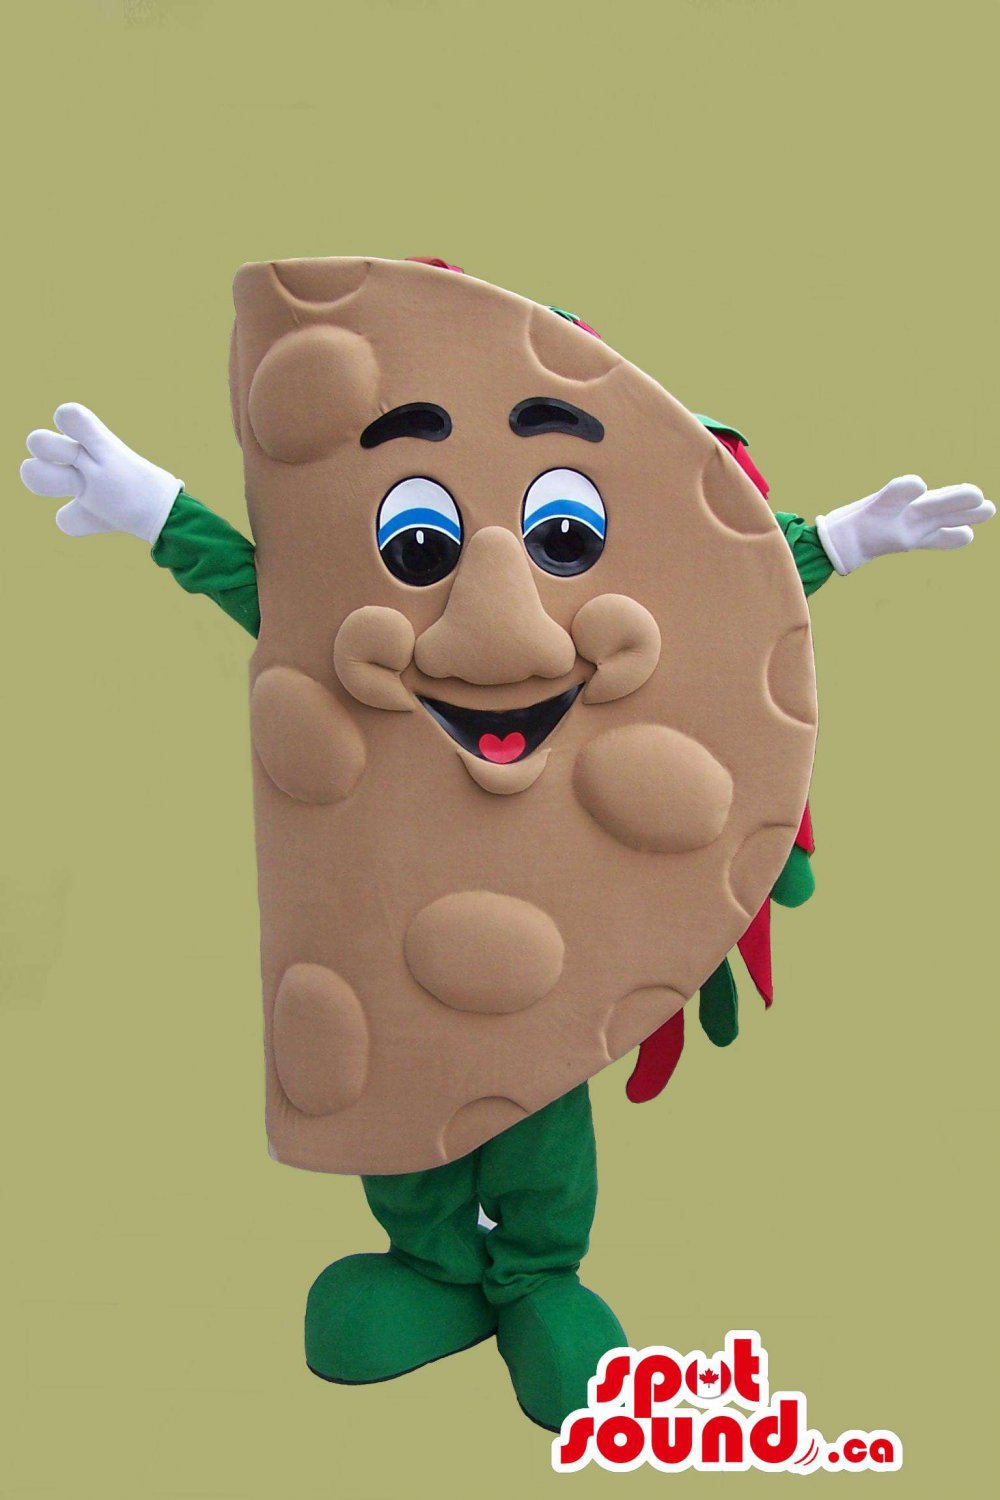 Taco Mexican Food Mascot SpotSound Canada With Large Eyes And Nice Smile